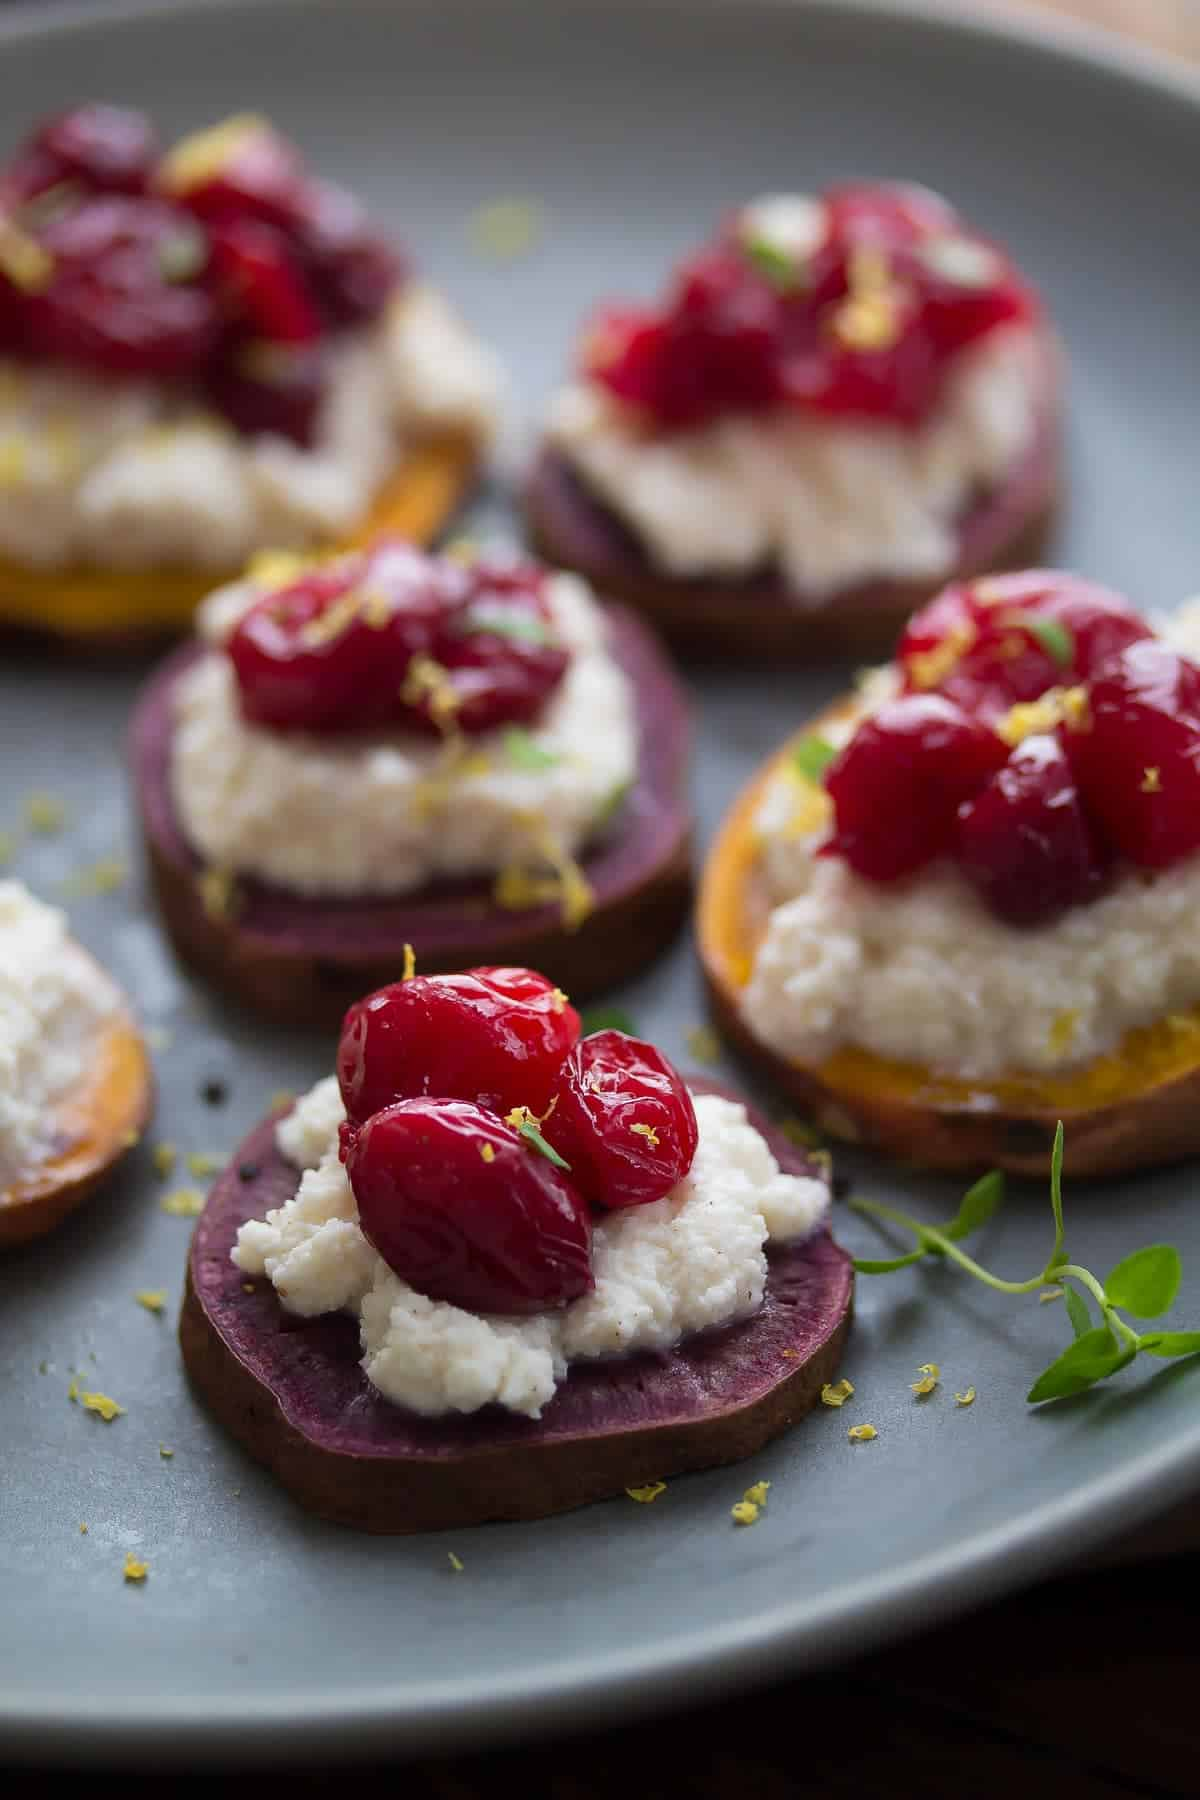 Sweet Potato Crostinis with Spiced Ricotta and Roasted Cranberries are up on the blog today! A healthy holiday appetizer that is packed full of superfoods and can be made ahead of time.